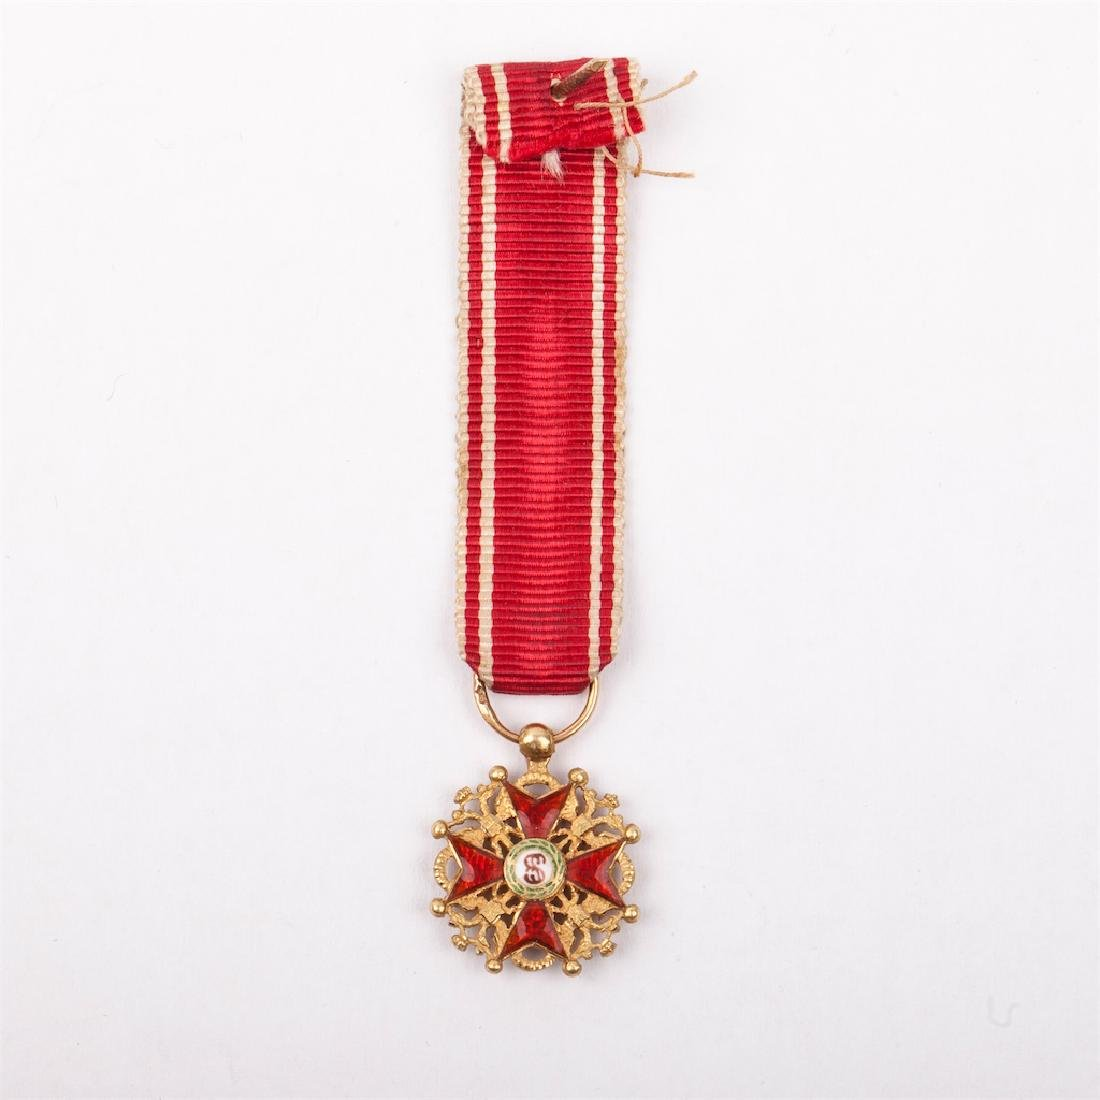 Miniature Imperial Order of St Stanislaus - 3